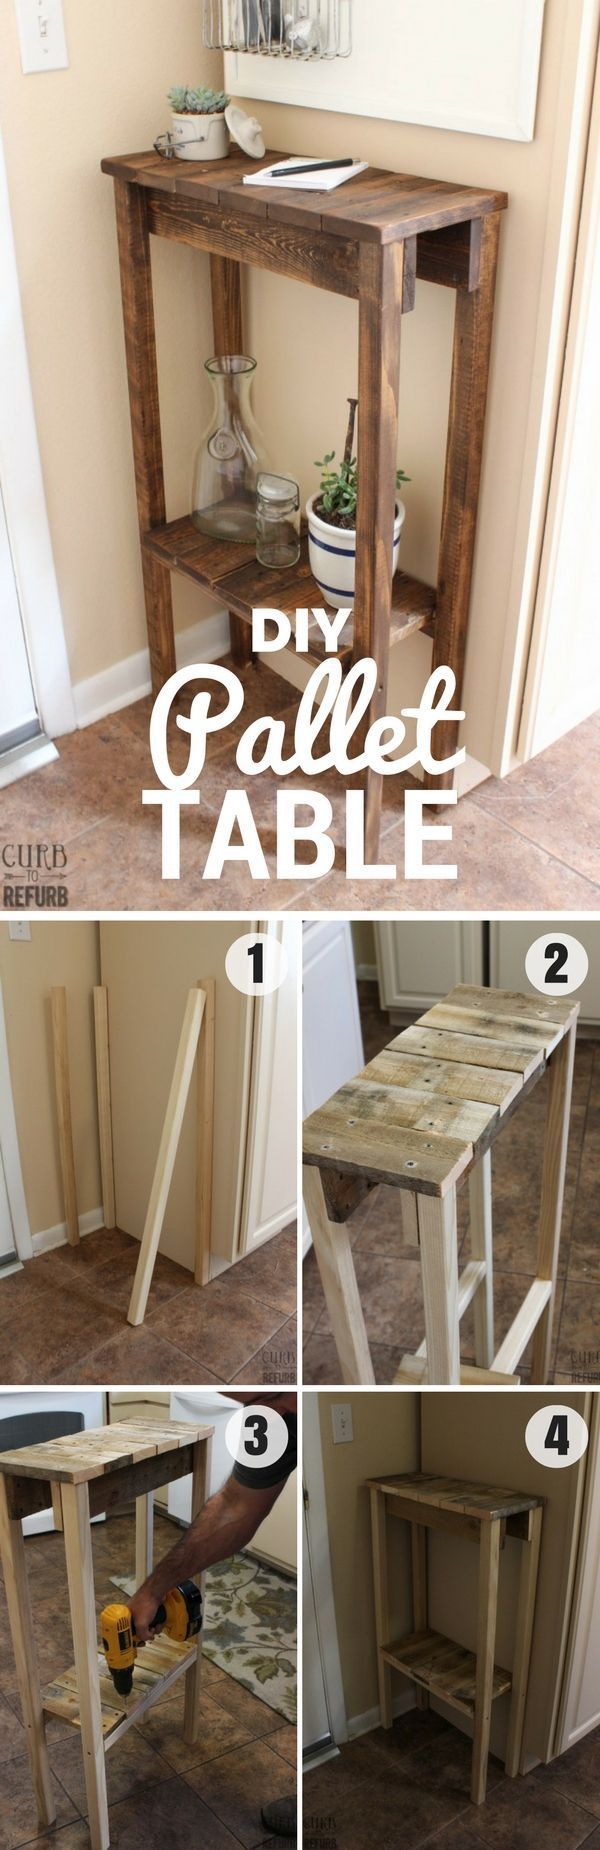 Diy pallet bedroom furniture check out how to build this easy diy pallet table istandarddesign